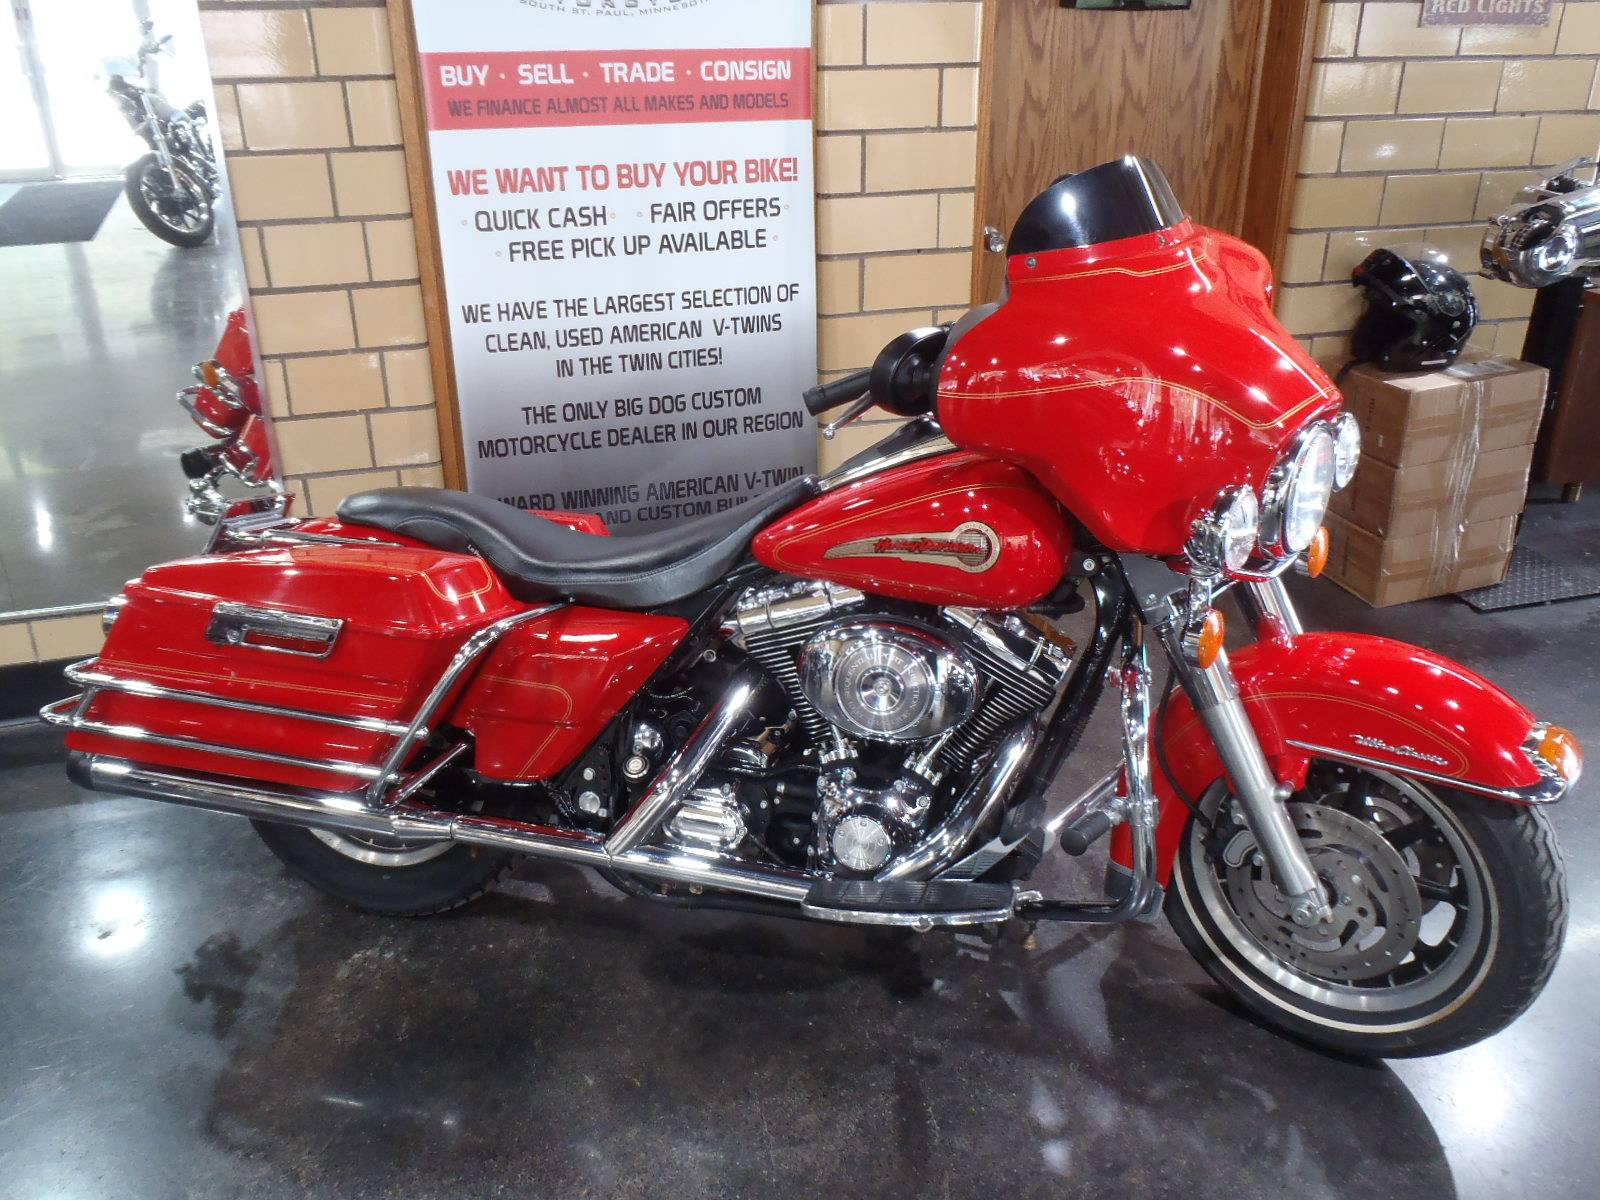 2002 Harley-Davidson FLHTCUI Ultra Classic® Electra Glide® in South Saint Paul, Minnesota - Photo 8